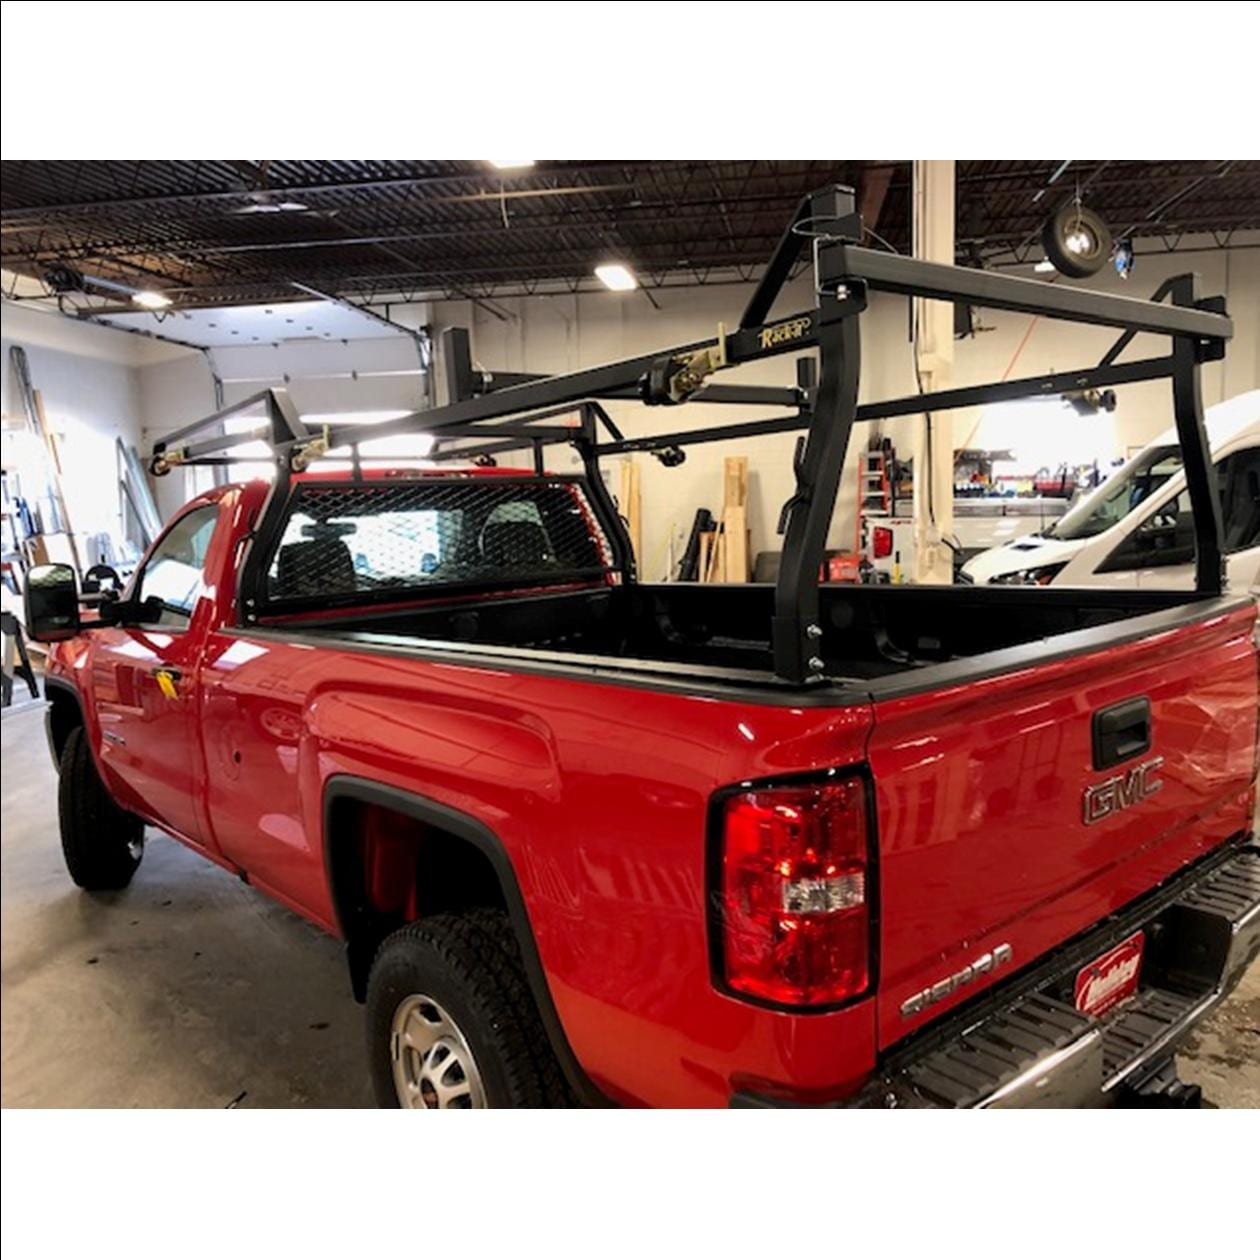 hight resolution of rack it inc rack it inc hd forklift loadable rack for gm silverado sierra long bed extended cab